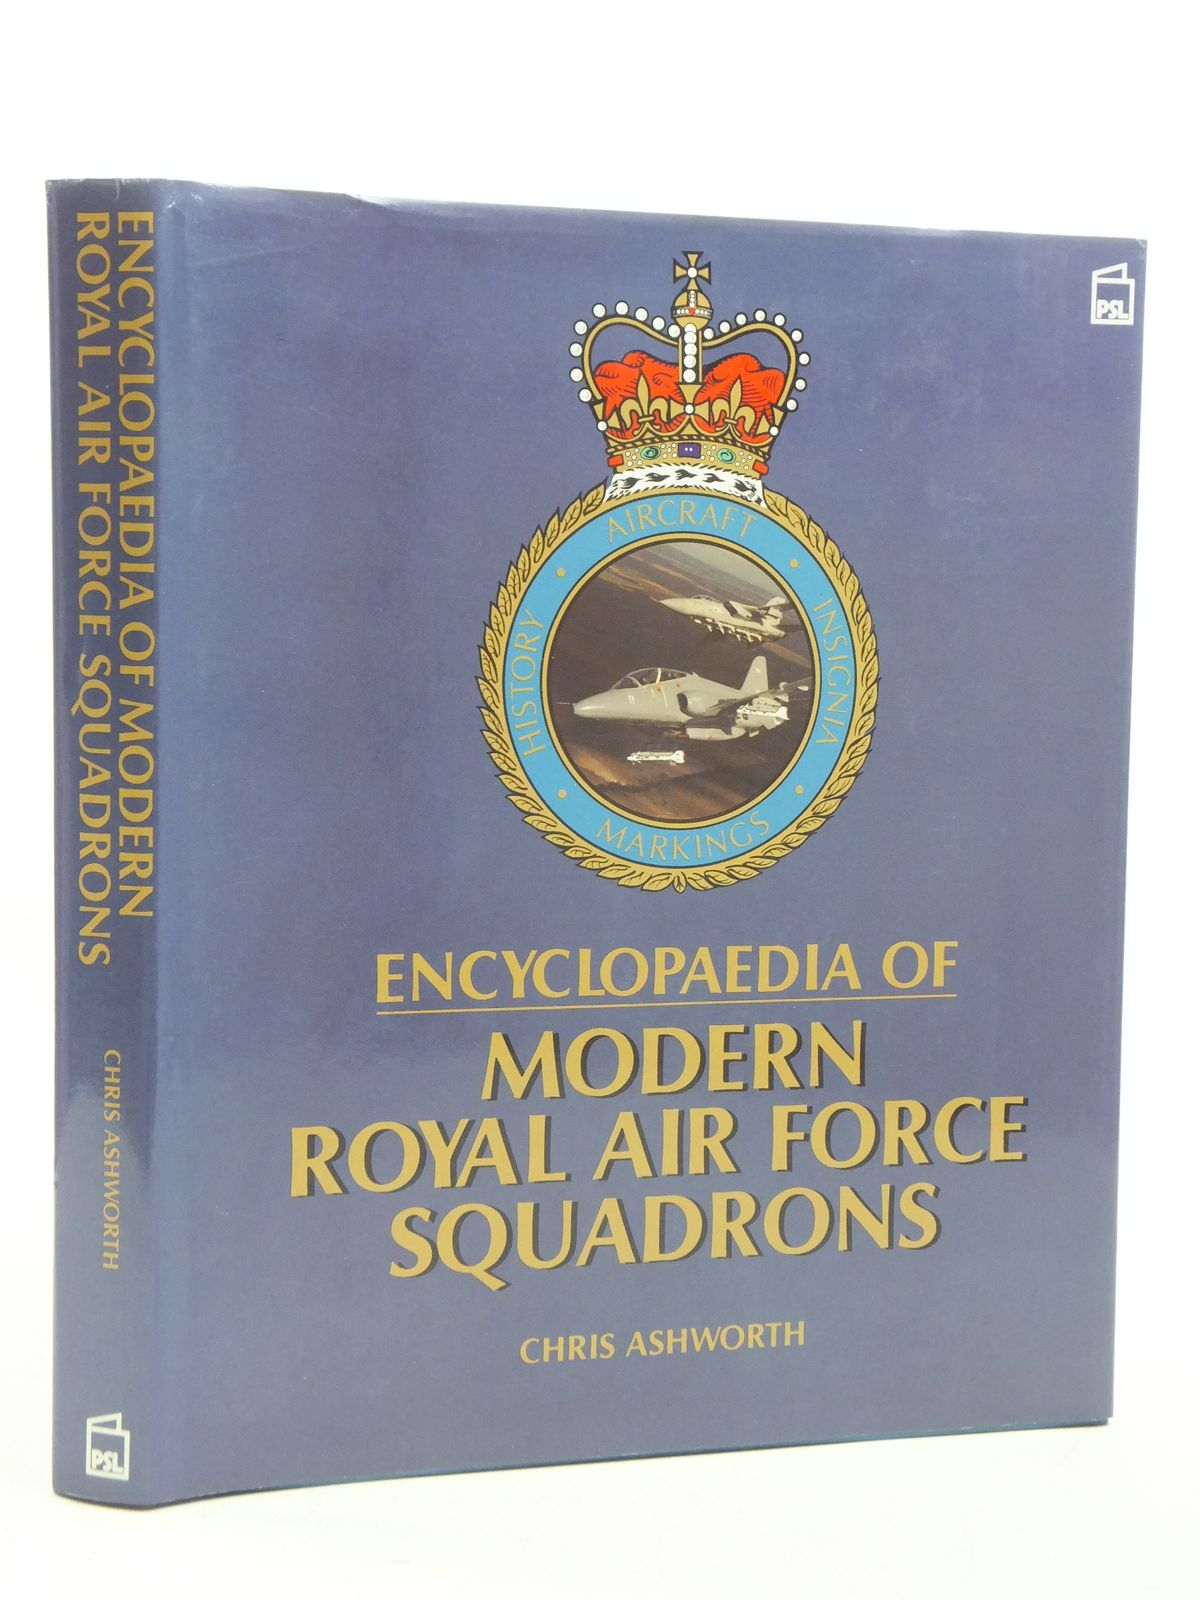 Photo of ENCYCLOPAEDIA OF MODERN ROYAL AIR FORCE SQUADRONS written by Ashworth, Chris published by Patrick Stephens Limited (STOCK CODE: 2111009)  for sale by Stella & Rose's Books